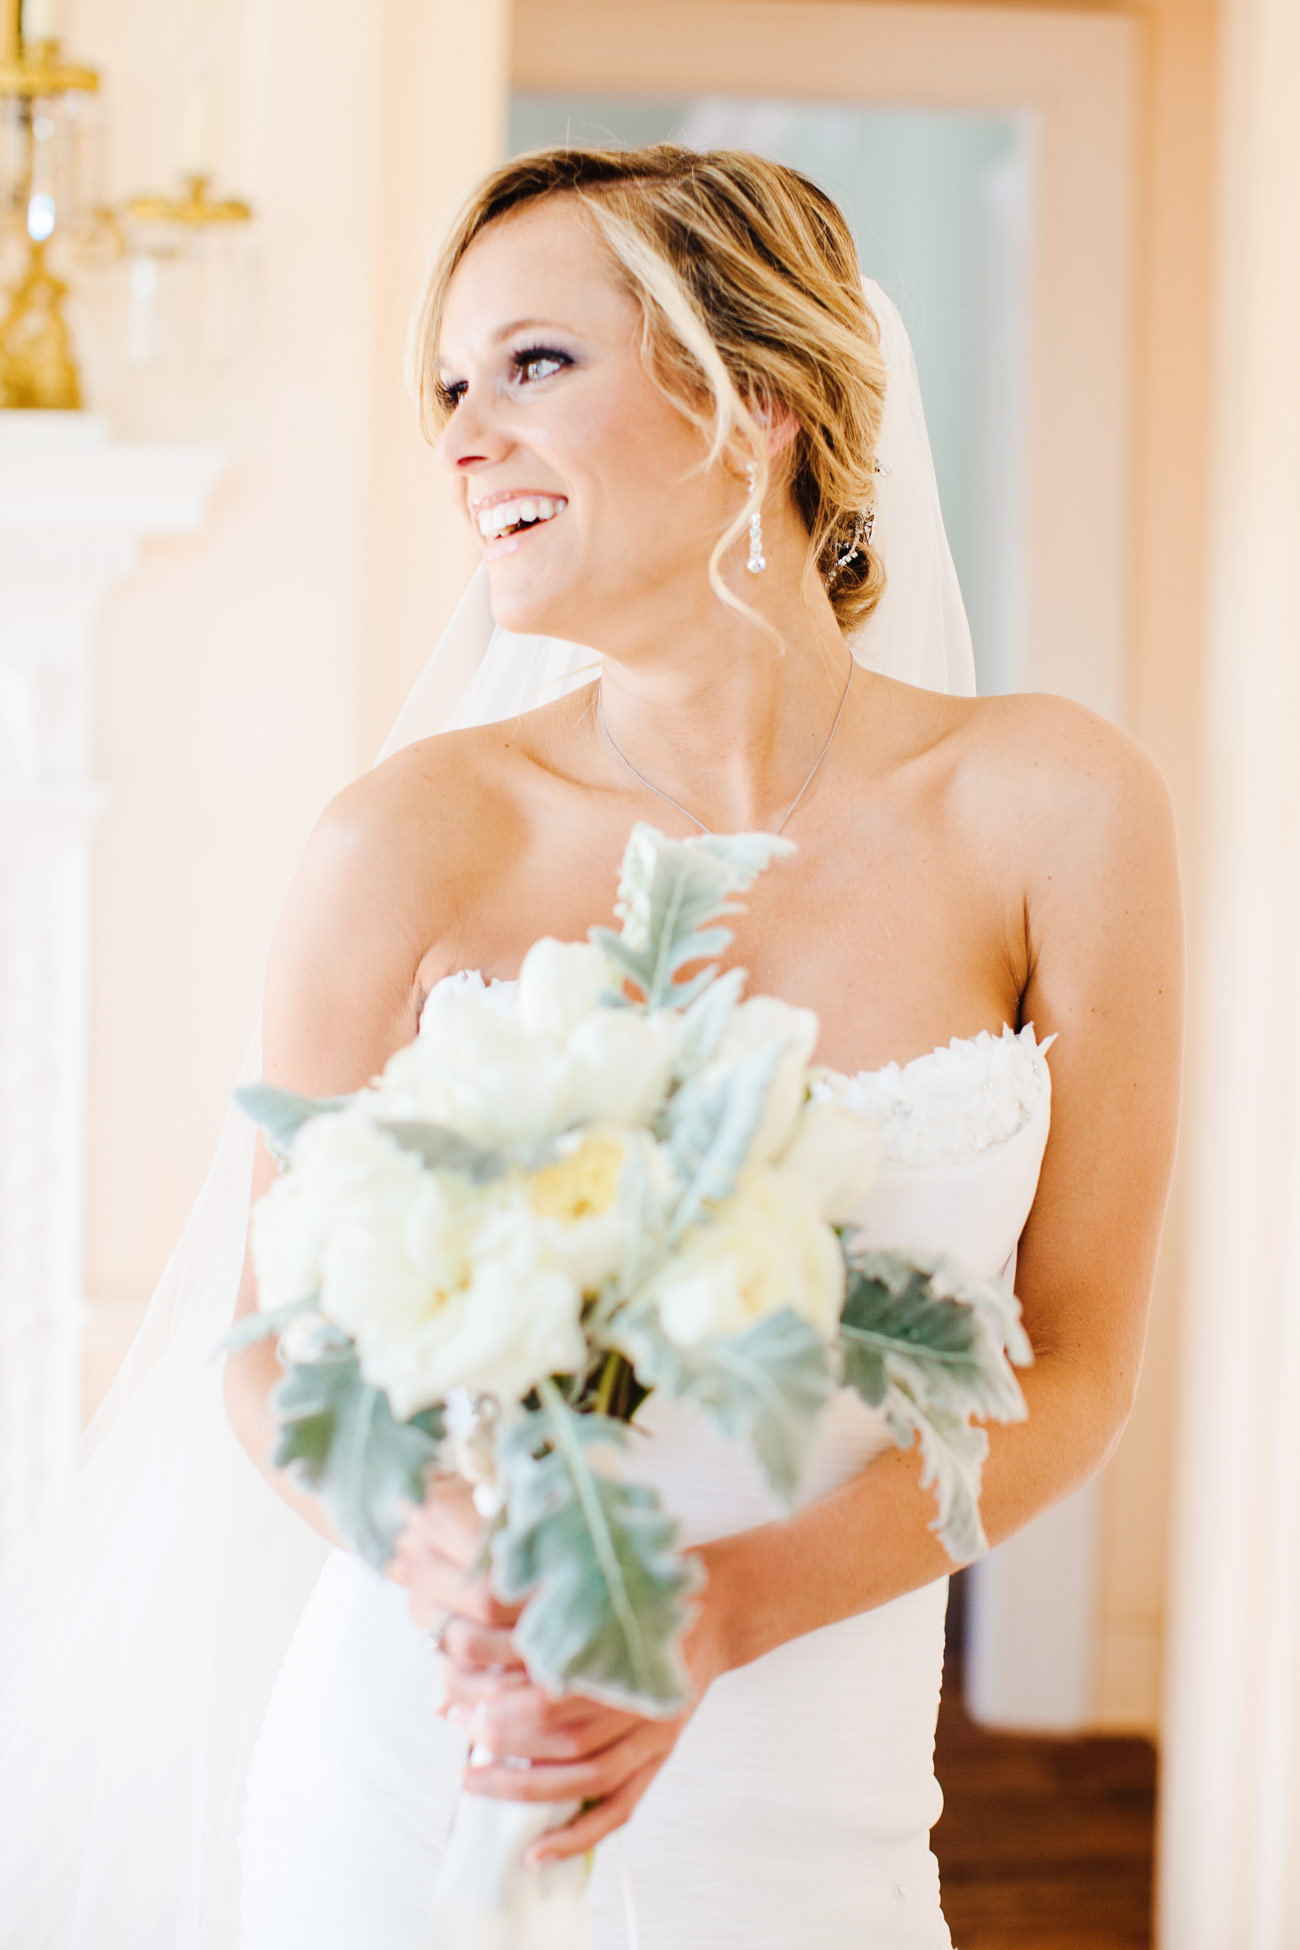 beautiful bride getting married at the lowndes grove wedding venue in charleston